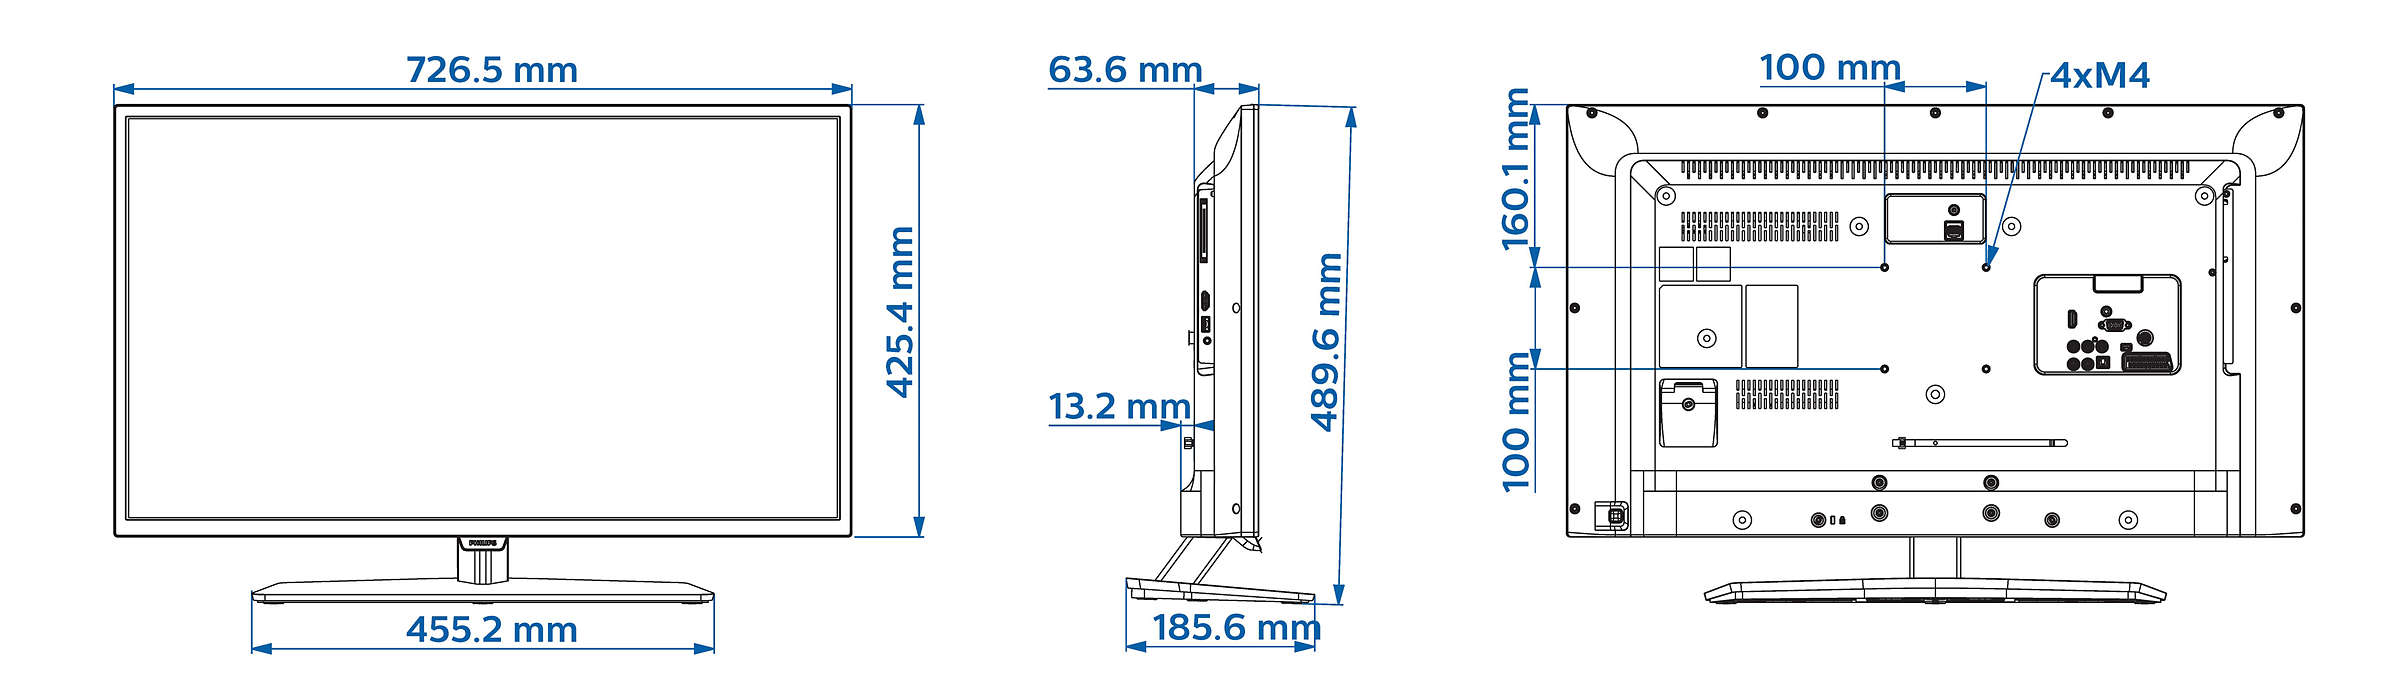 Professional Led Tv 32hfl3010t 12 Philips Audio Visual Nurse Call Schematic And Wiring Diagram For Installation Incredible Functionality Your Guests